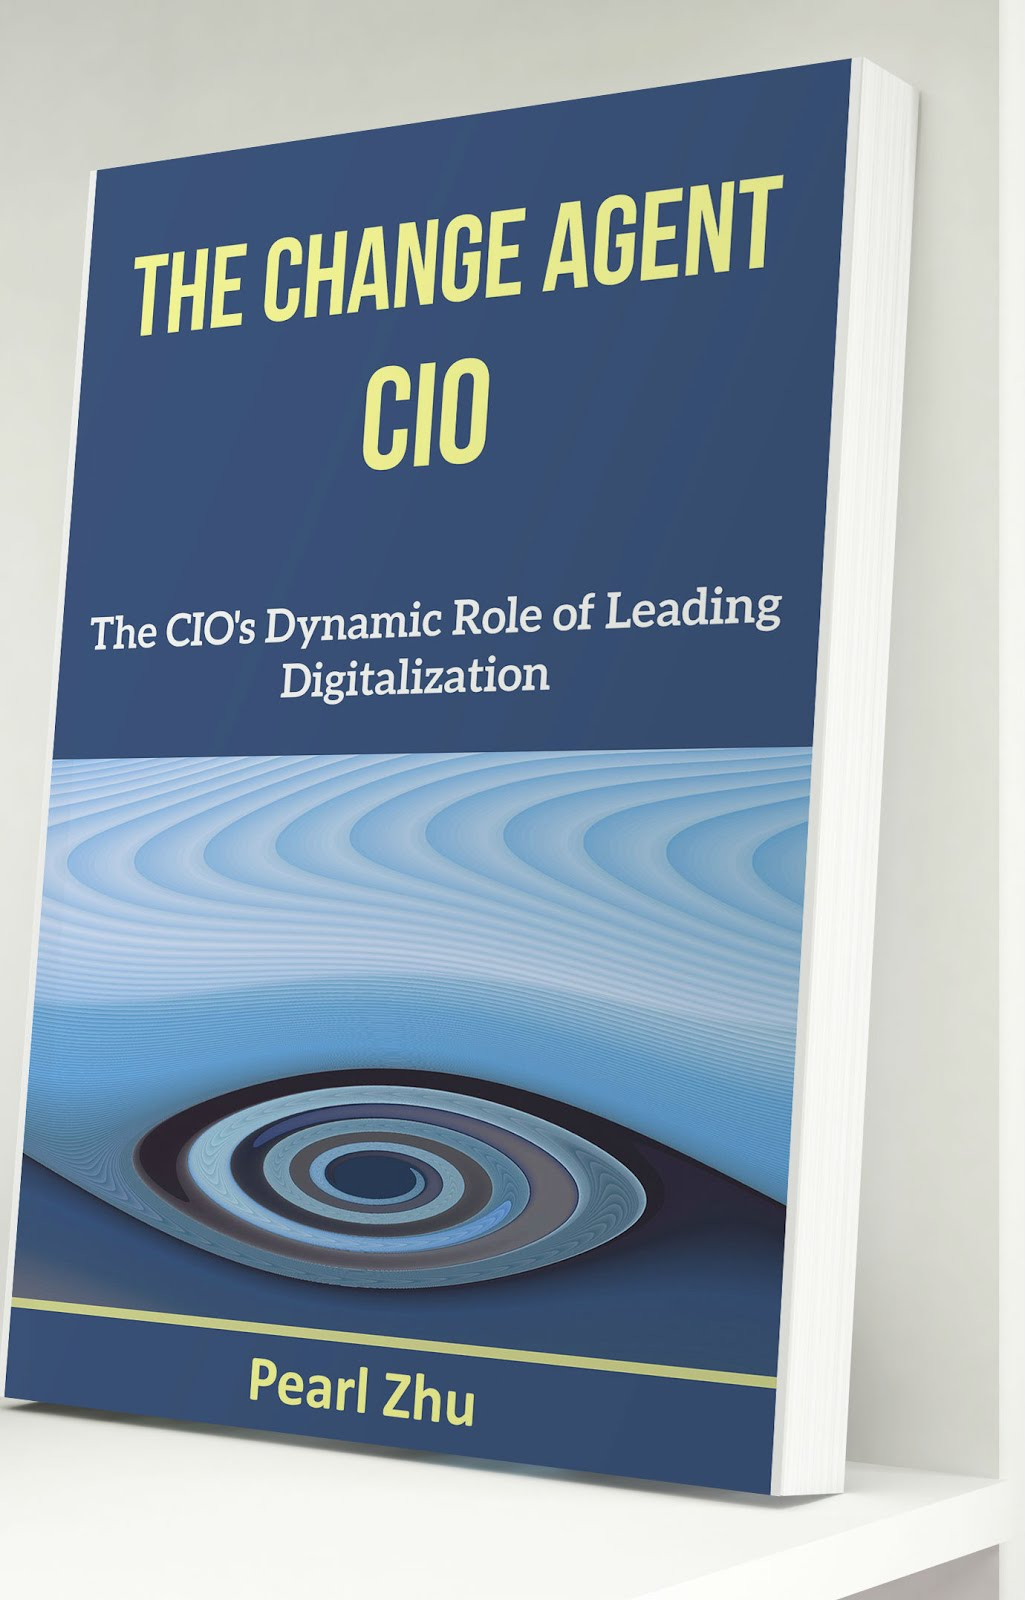 The Change Agent CIO